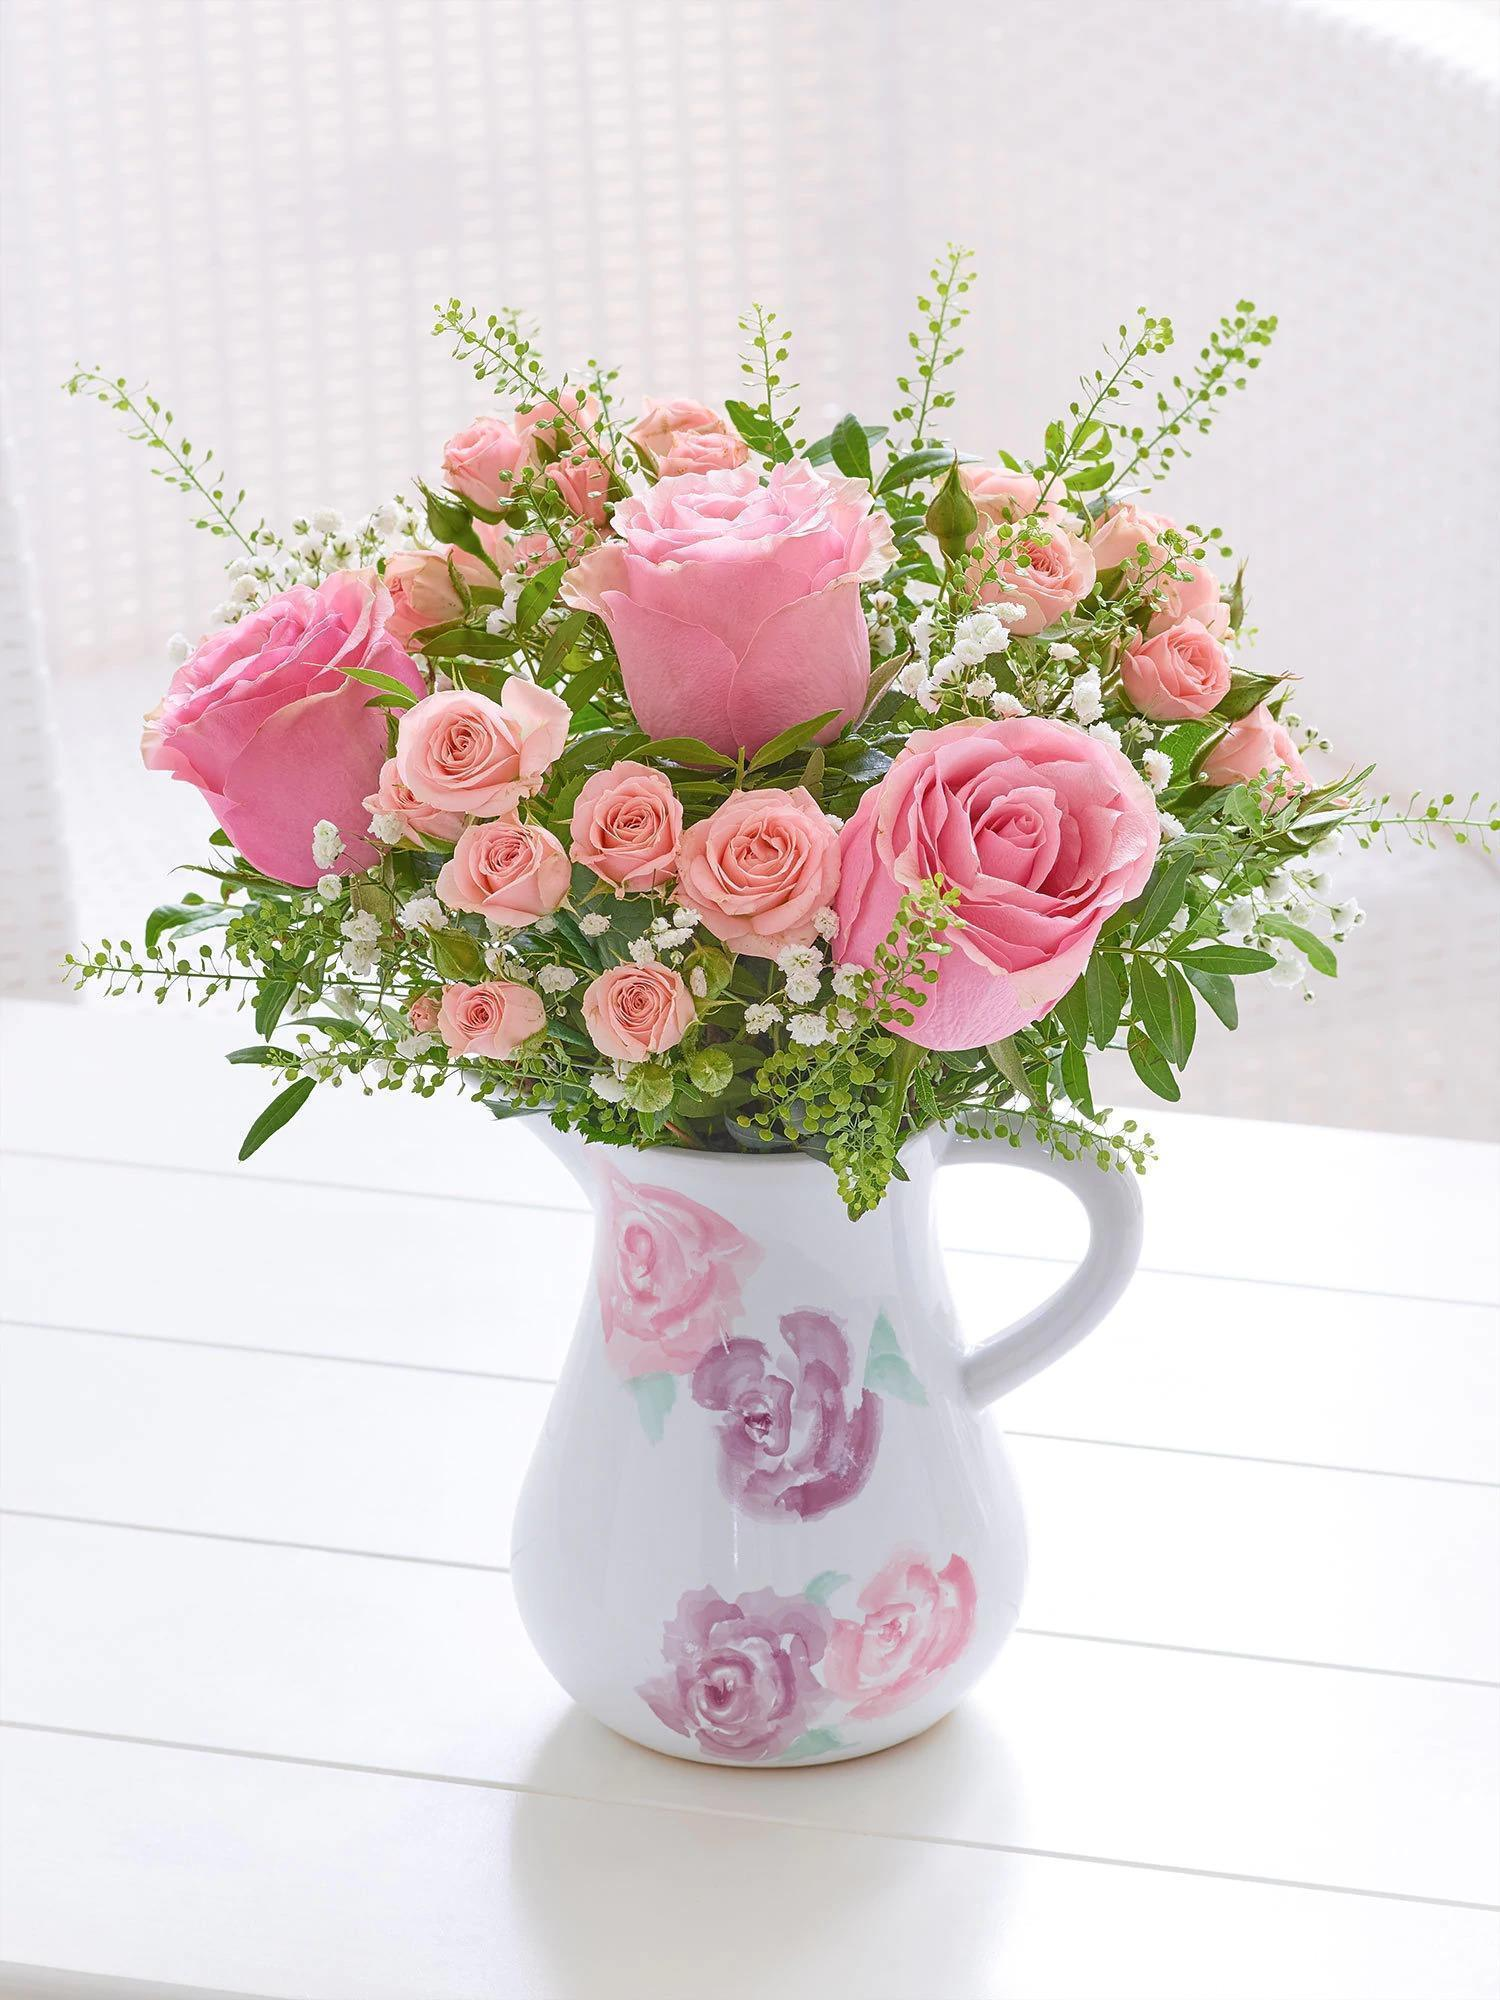 Image of Vintage Chic Rose Jug